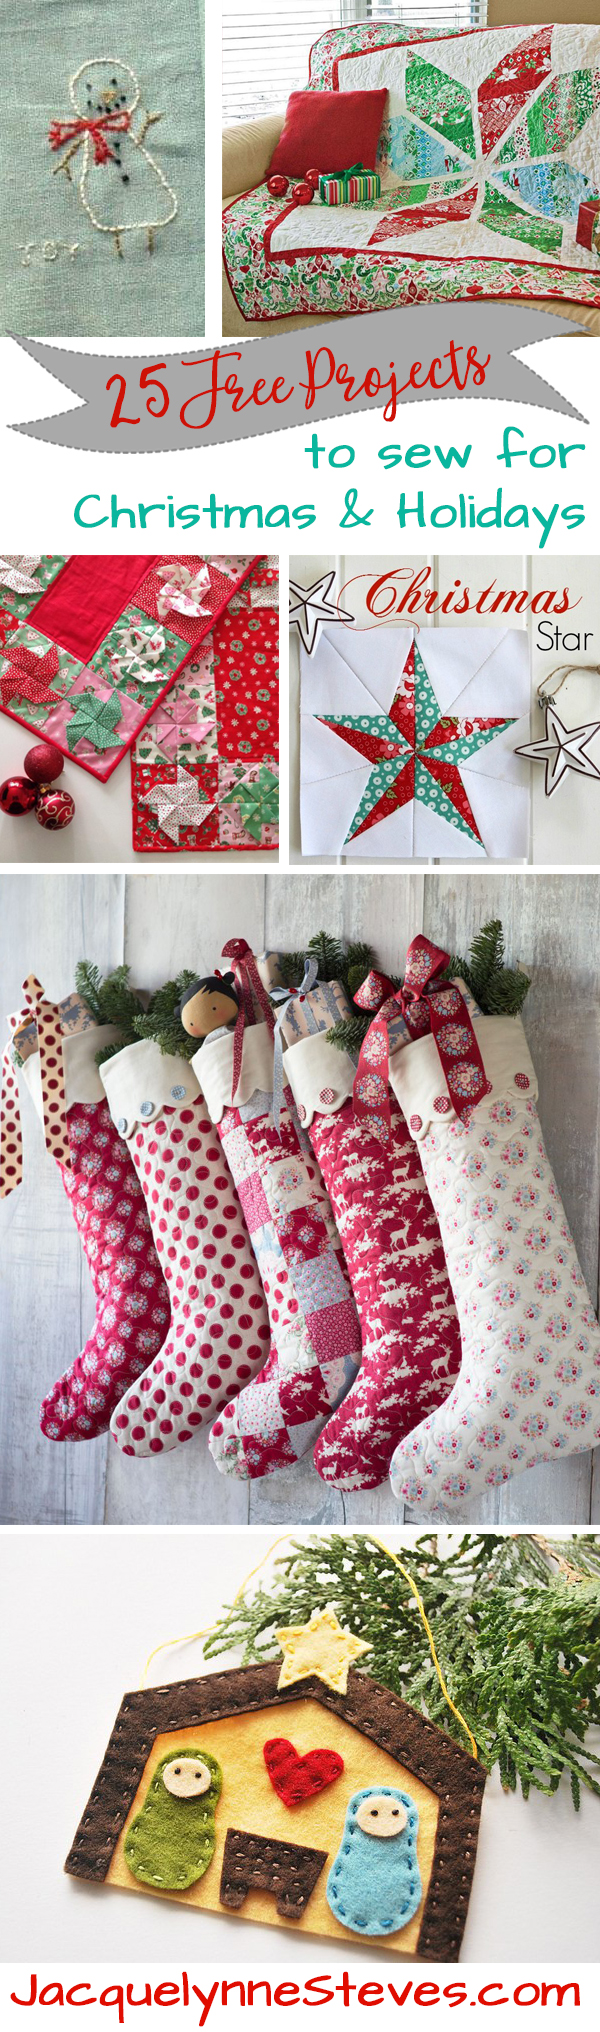 25 Free Projects to Sew for Christmas and Holidays!